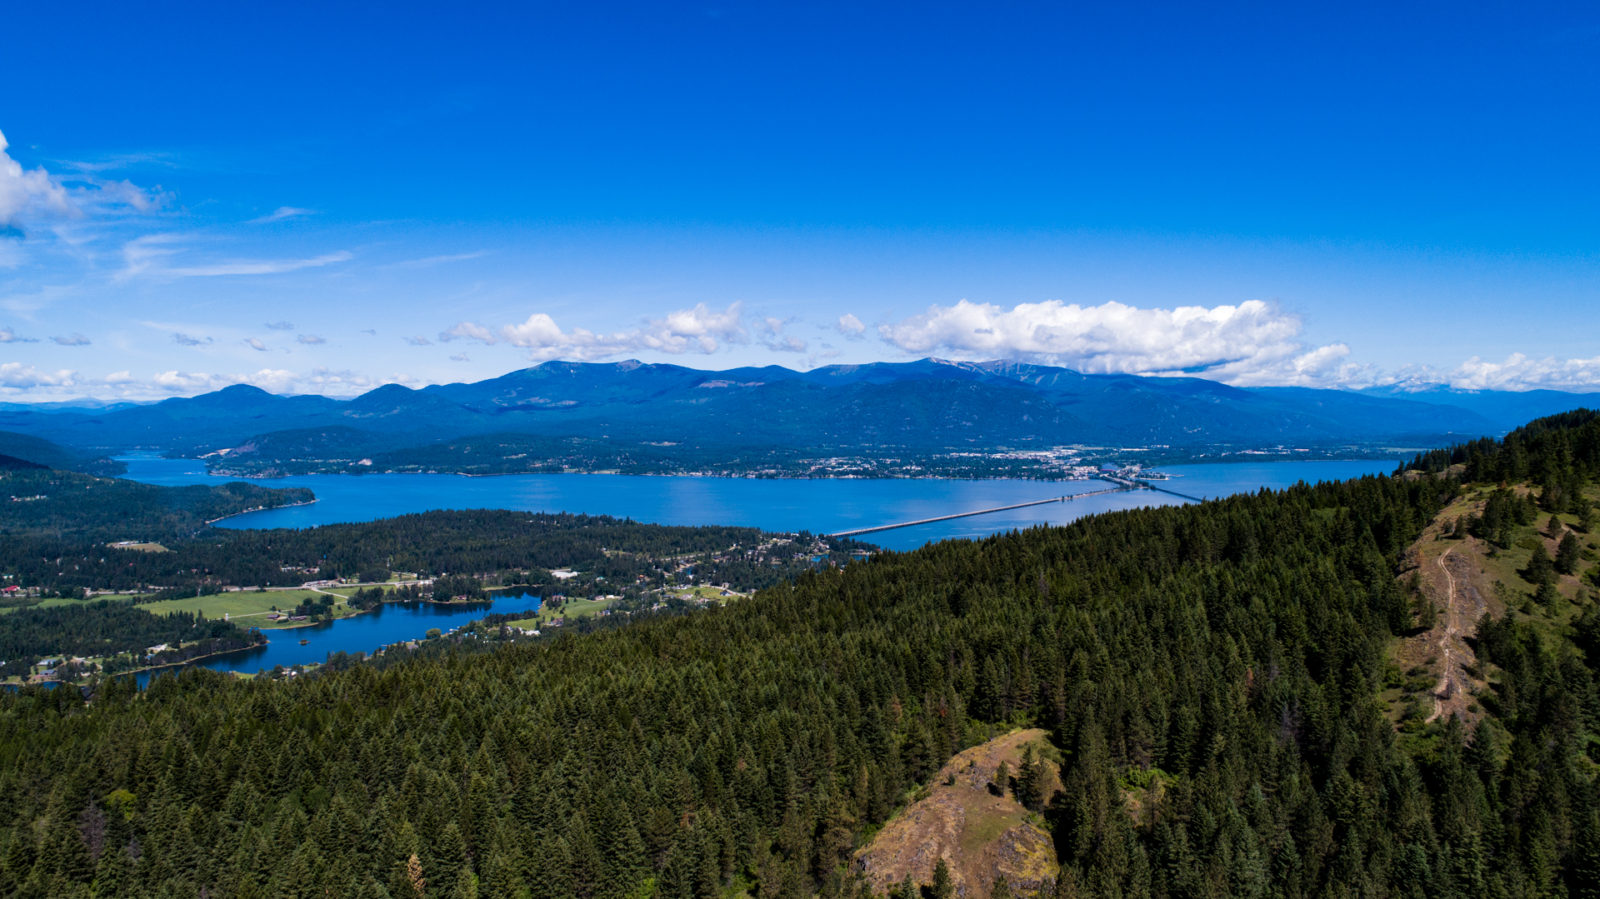 Lake Pend Oreille and Sandpoint